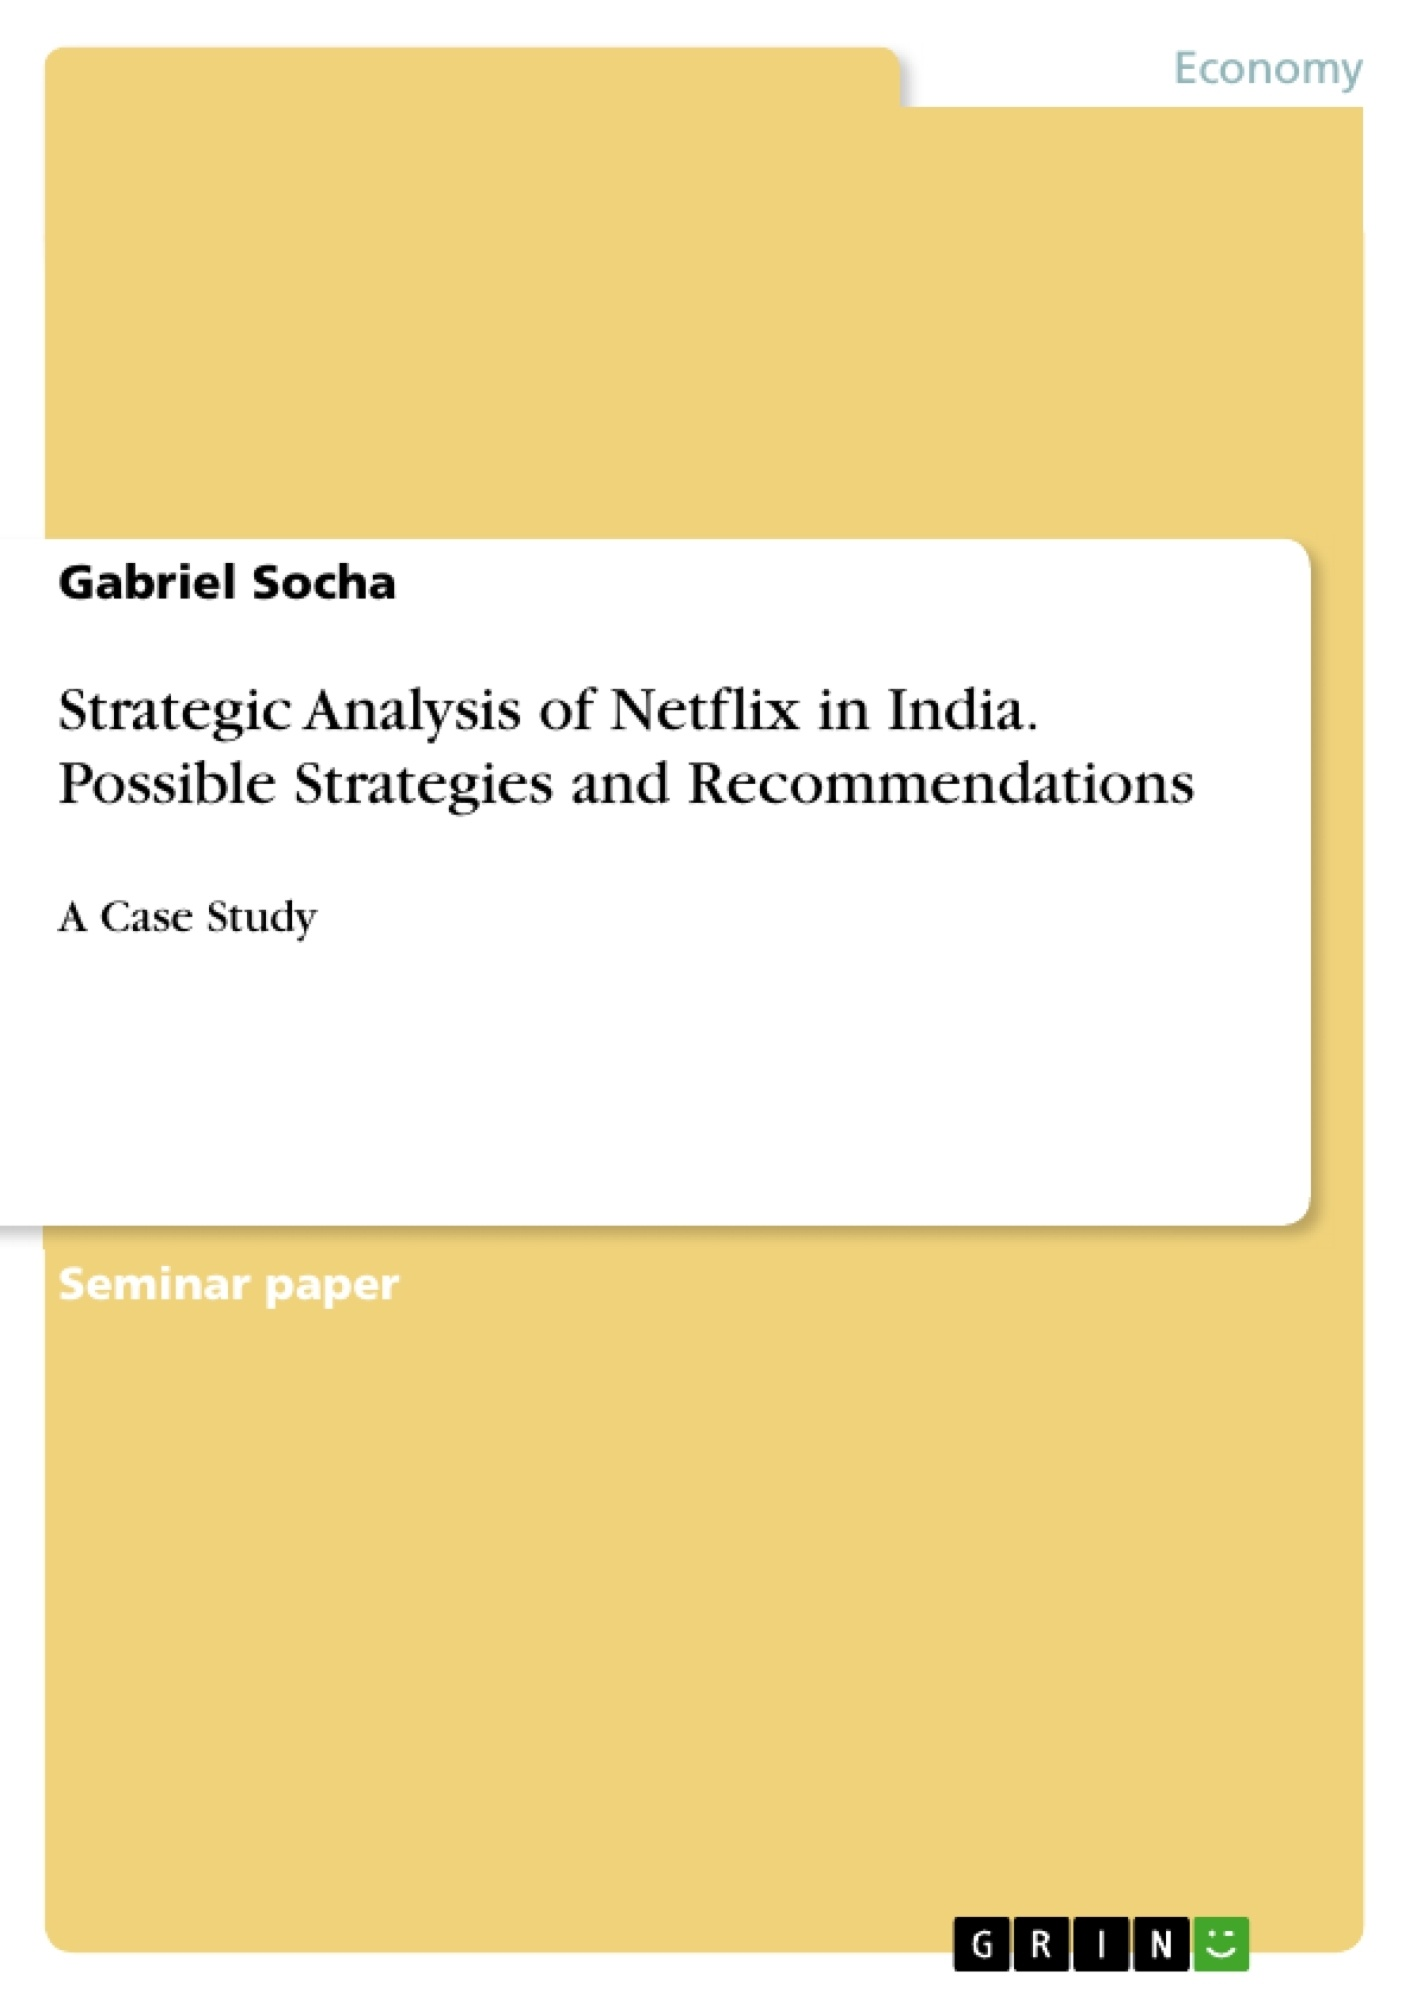 Title: Strategic Analysis of Netflix in India. Possible Strategies and Recommendations